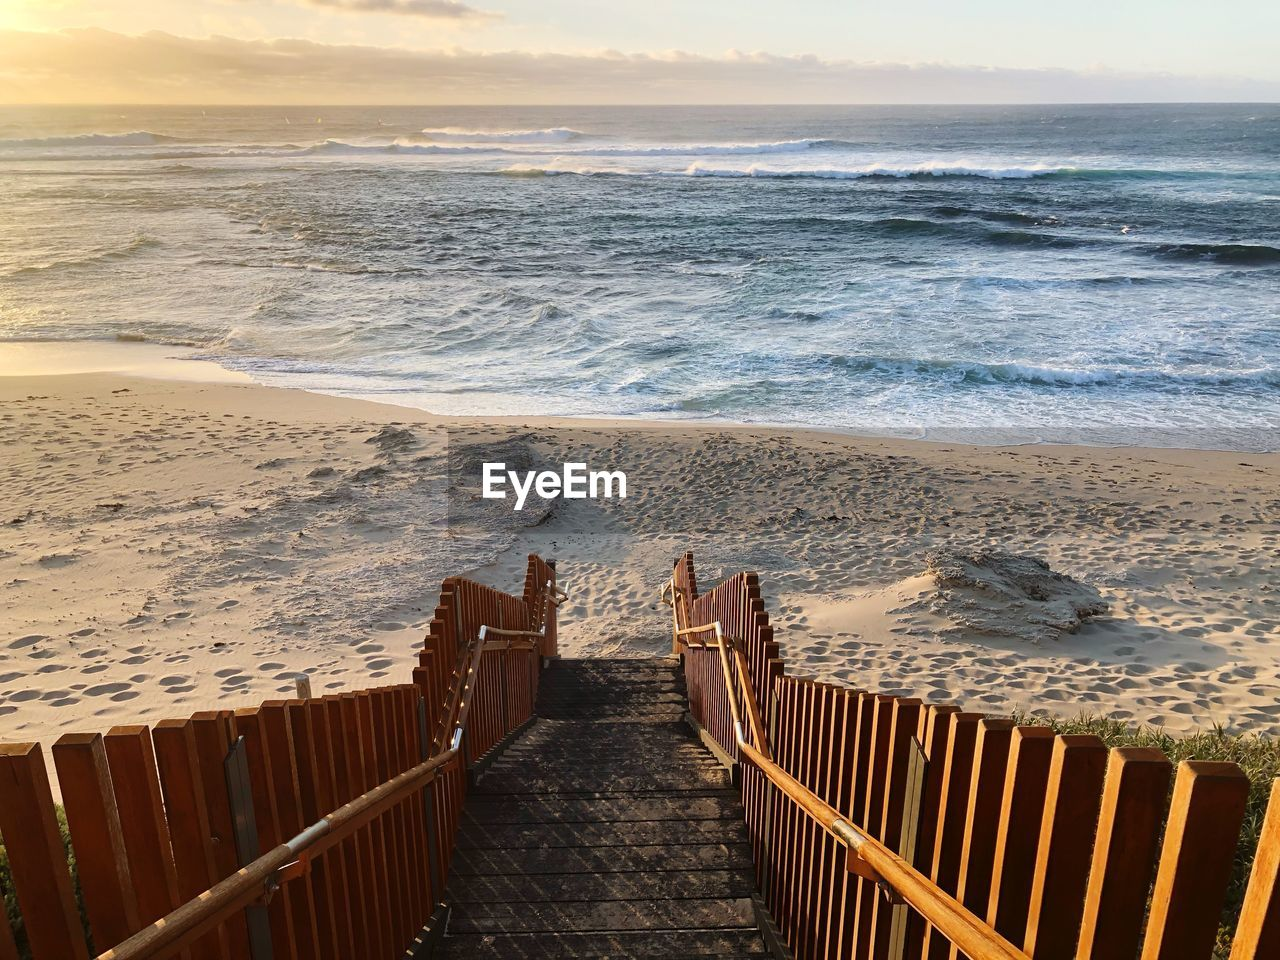 sea, beach, water, land, sky, beauty in nature, horizon, horizon over water, wave, scenics - nature, motion, nature, sand, sunset, railing, idyllic, tranquil scene, aquatic sport, surfing, outdoors